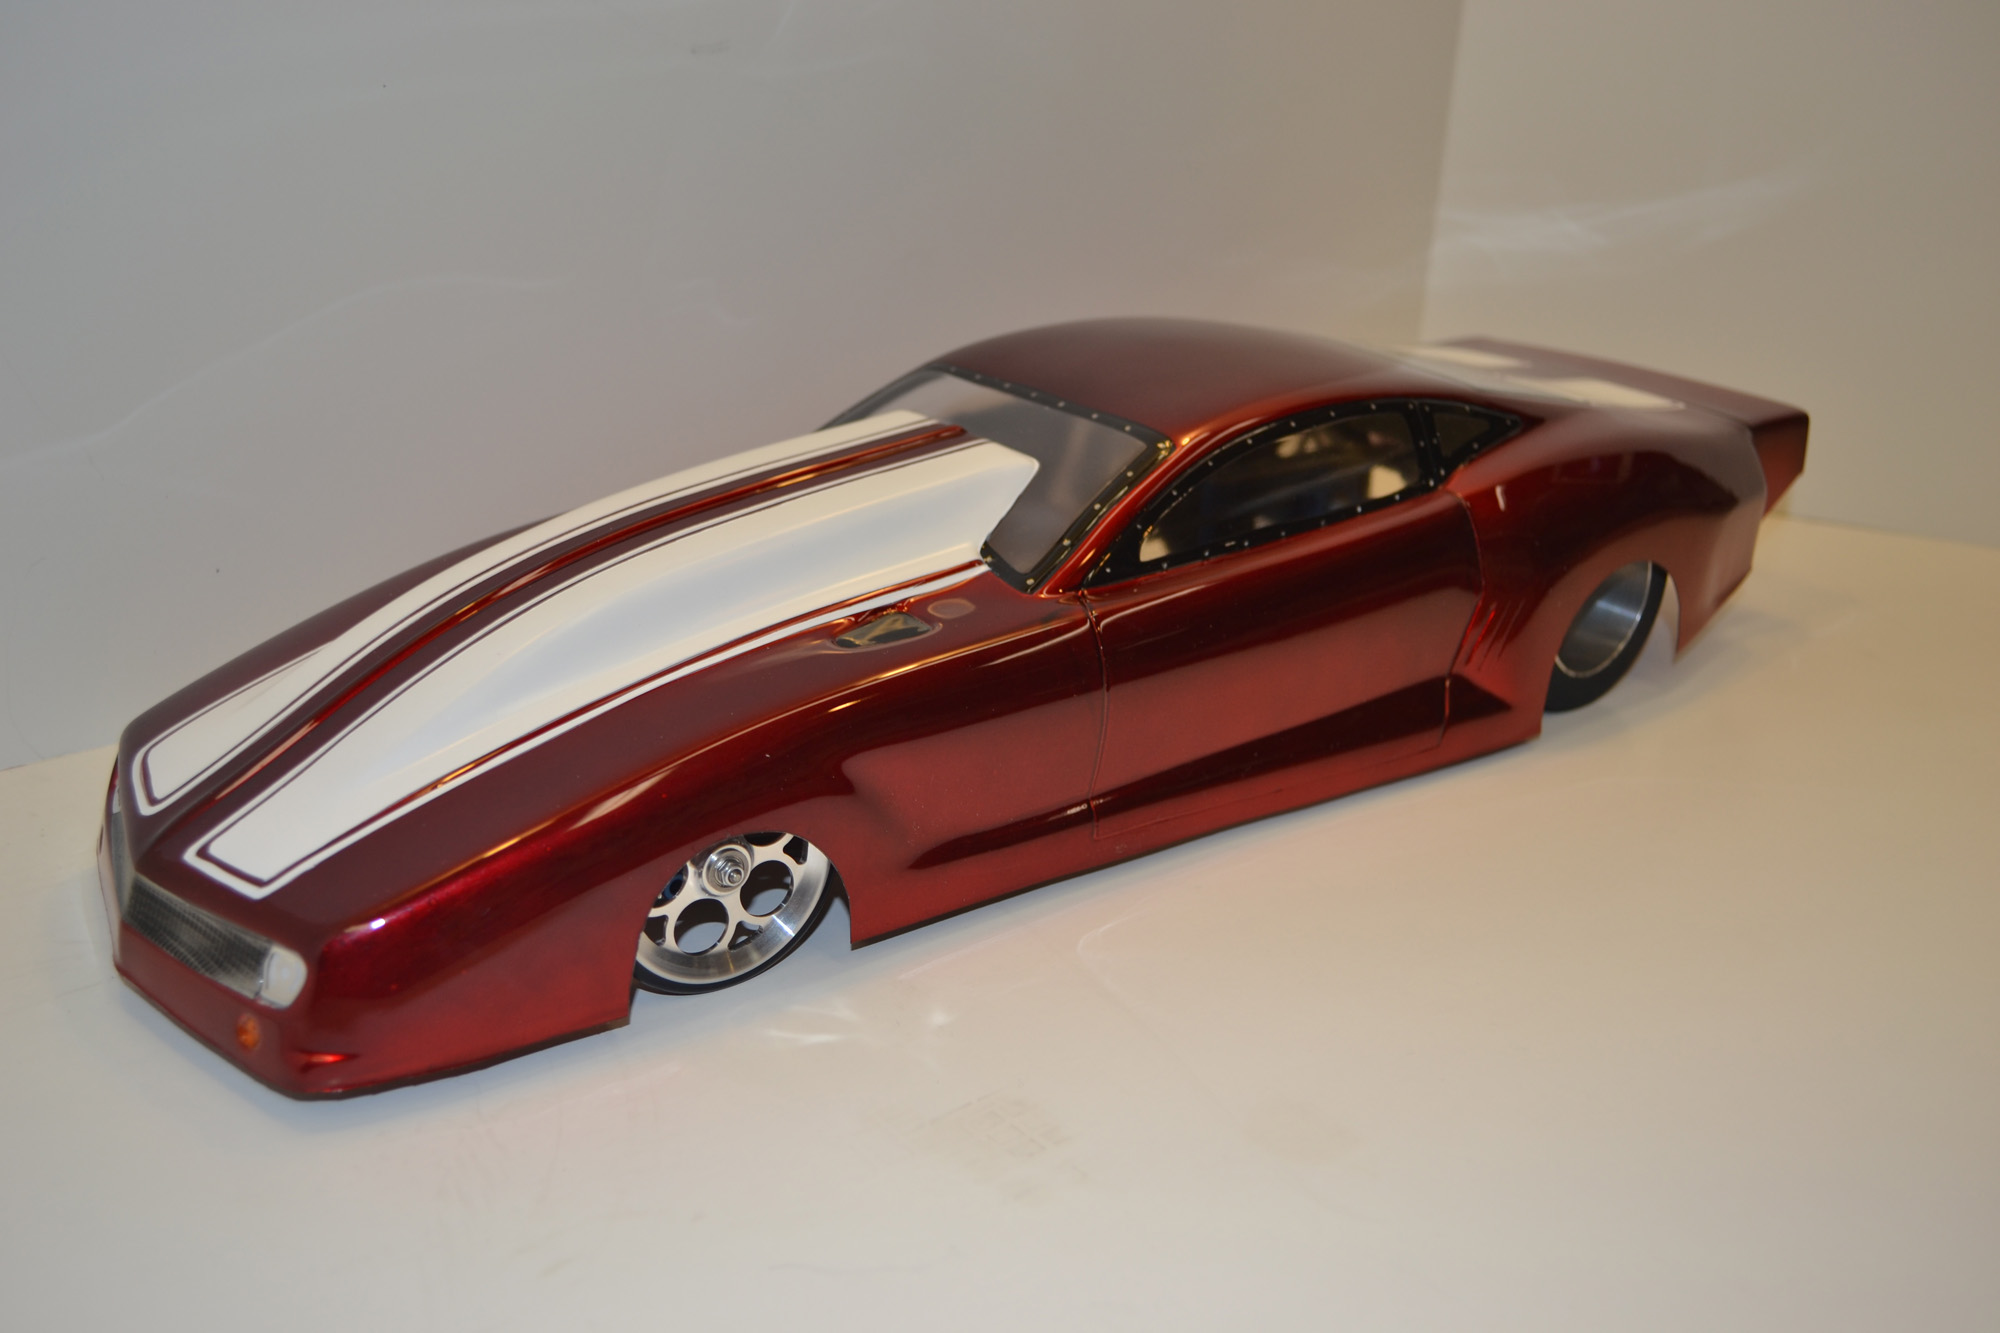 Rc Car Kings Your Radio Control Car Headquarters For Gas Nitro Electric And Brushless Motor Trucks Boats Crawlers Buggies Airplanes Helicopters Drag Vehicles Traxxas Batmobile Other Rc Cars And Great Service